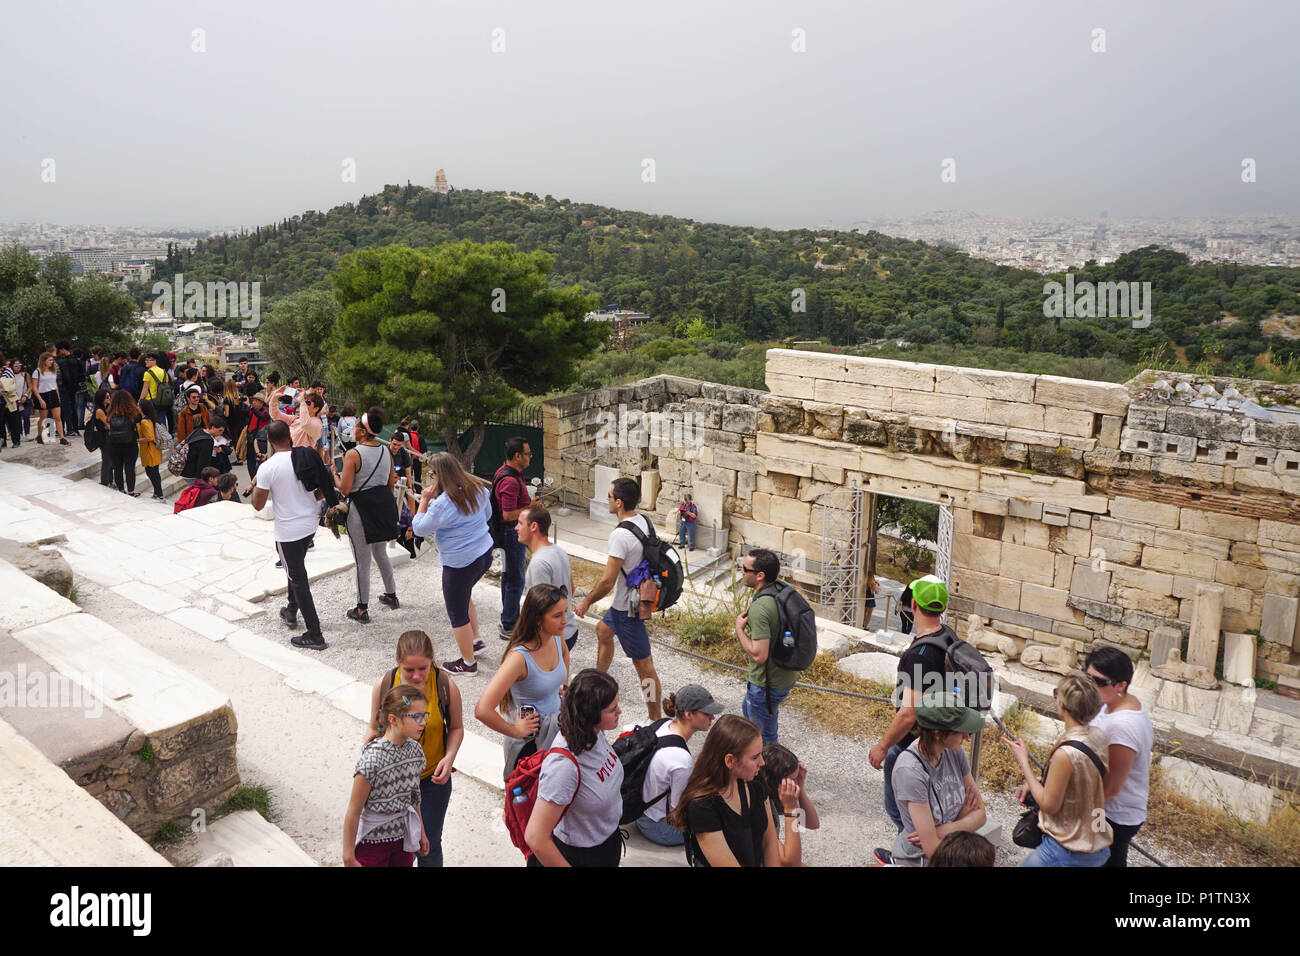 Athens, Greece - April 16, 2018: Tourists crowd the propyla (entrance) of the Acropolis of Athens, near the Roman-era Beulé Gate on the right. - Stock Image